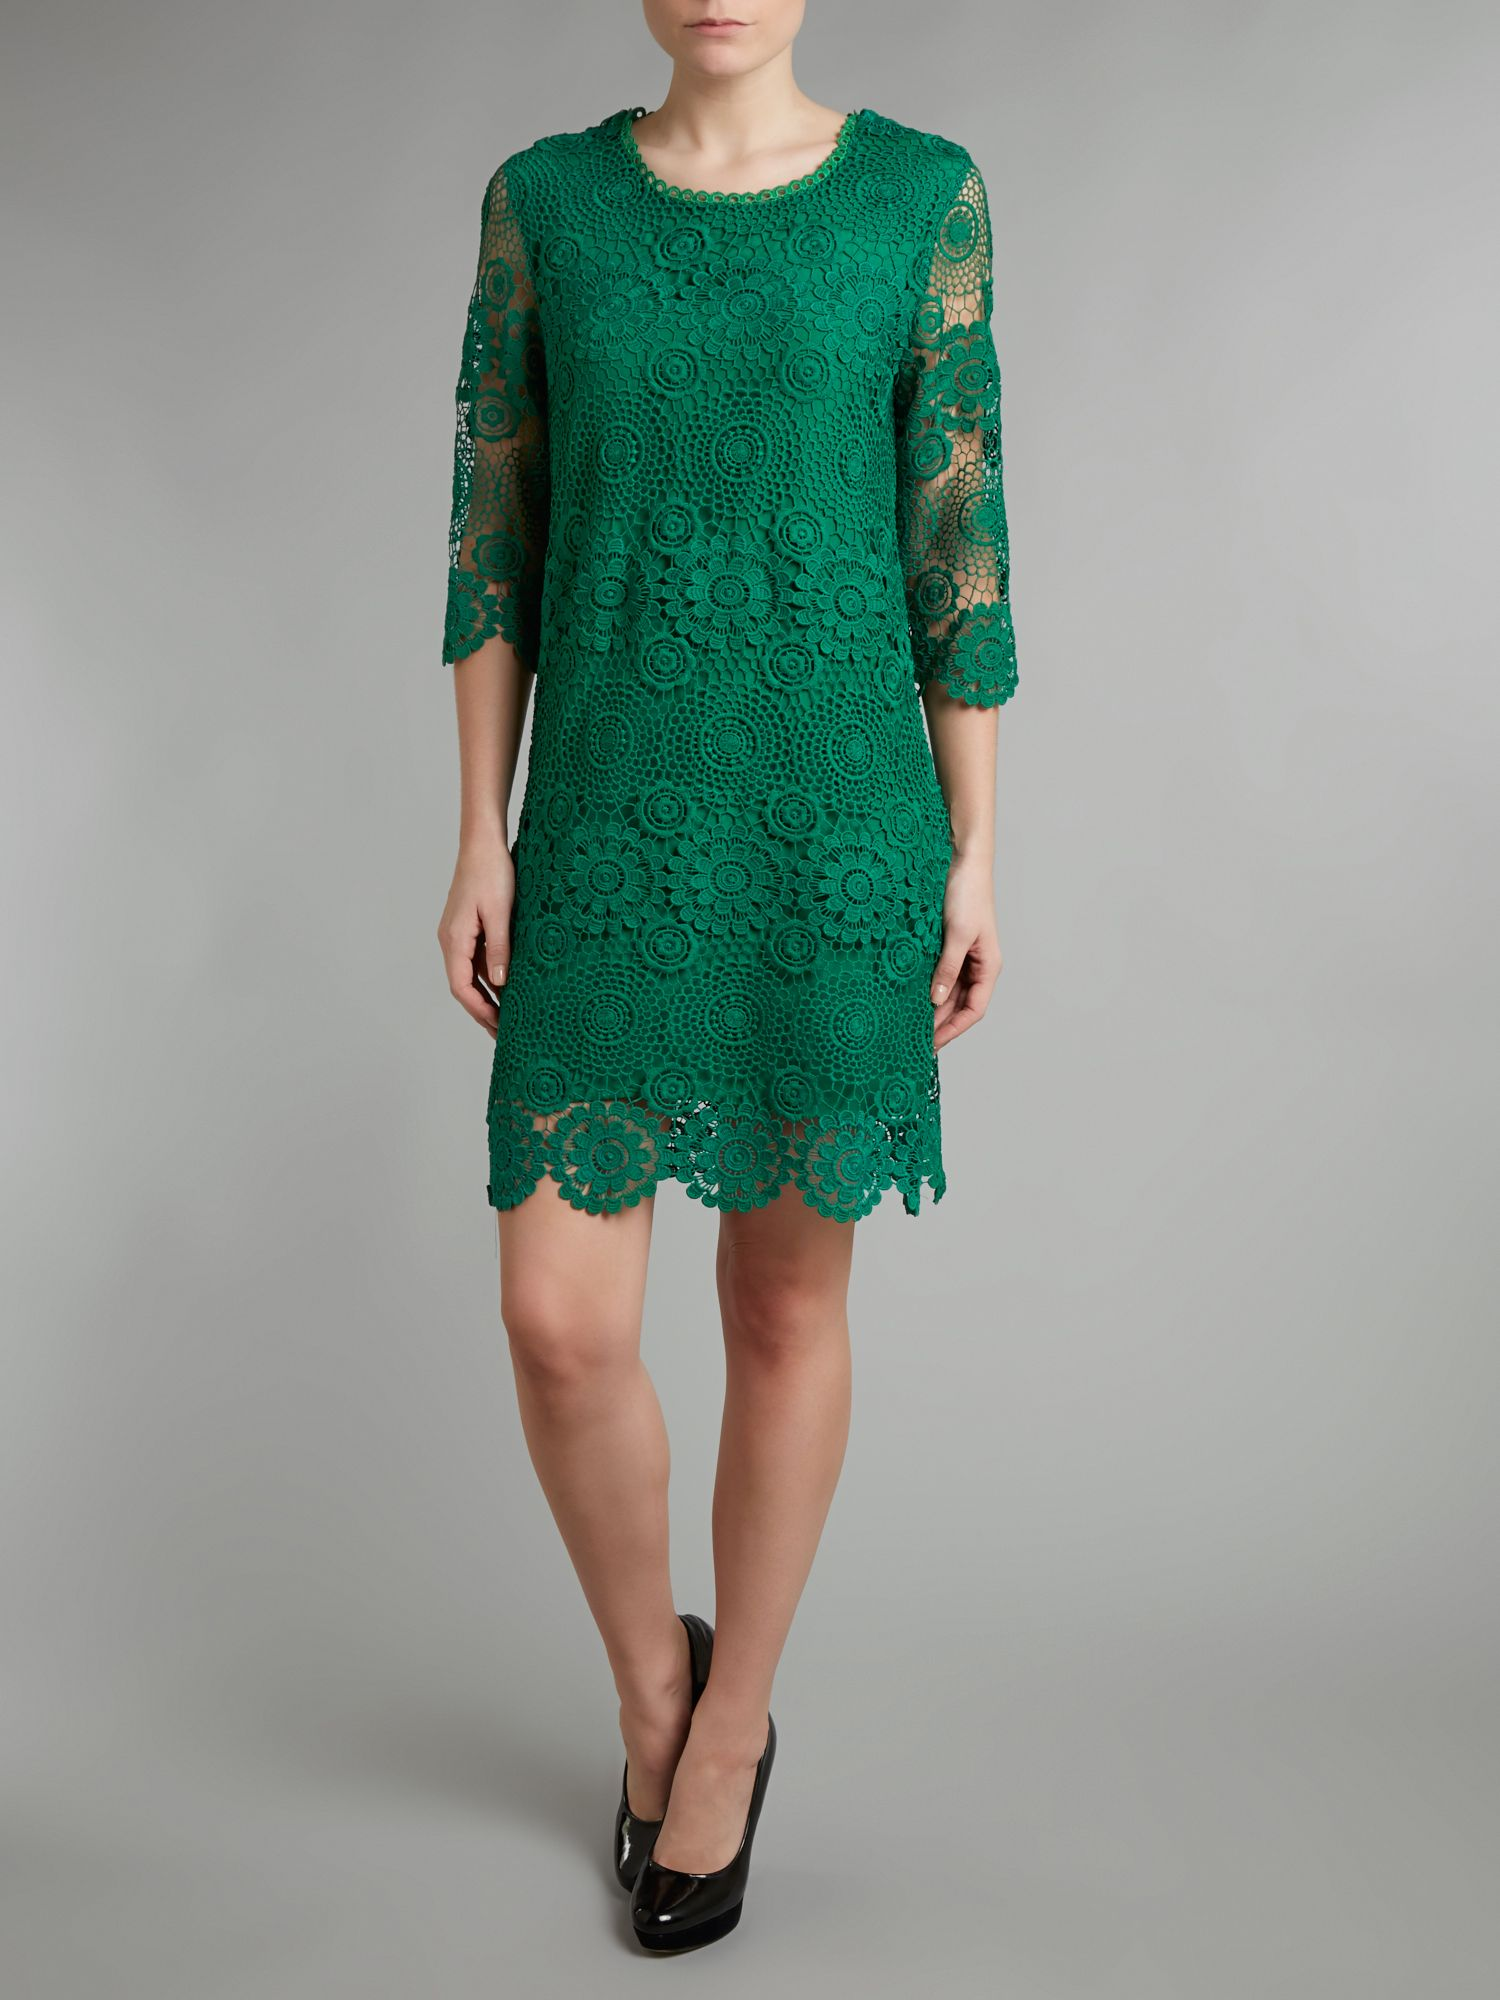 Crocheted cotton-lace dress